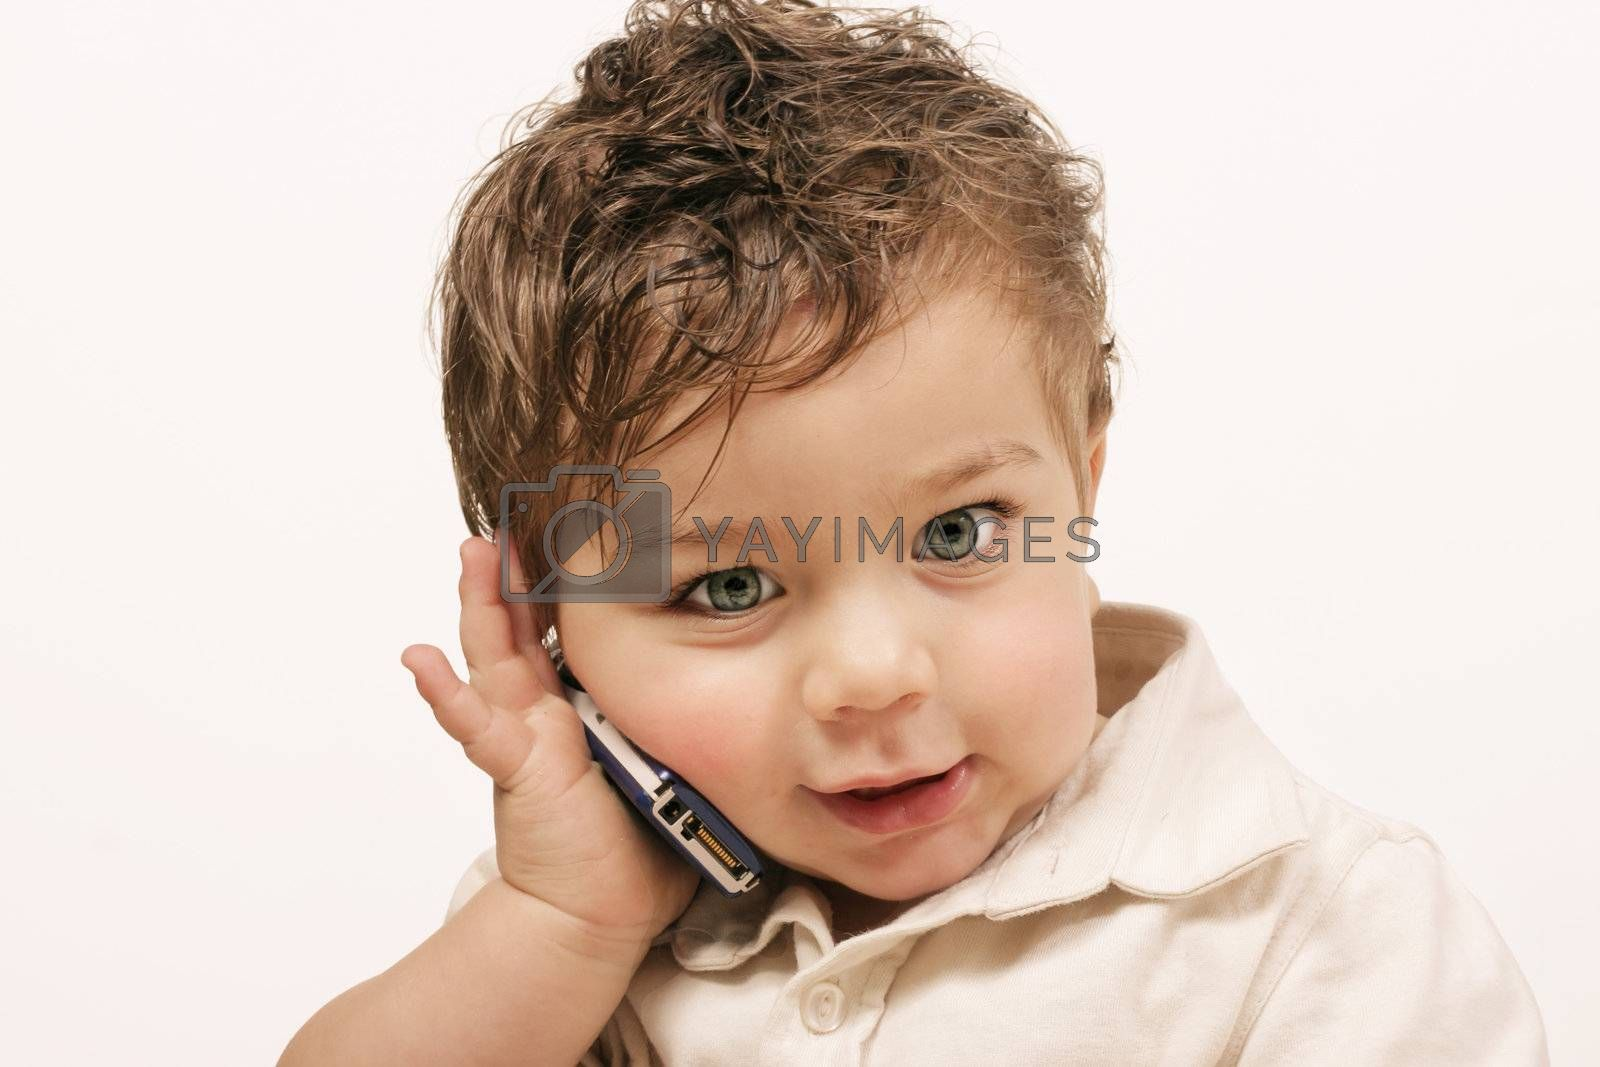 Toddler Talking on Phone by lovleah